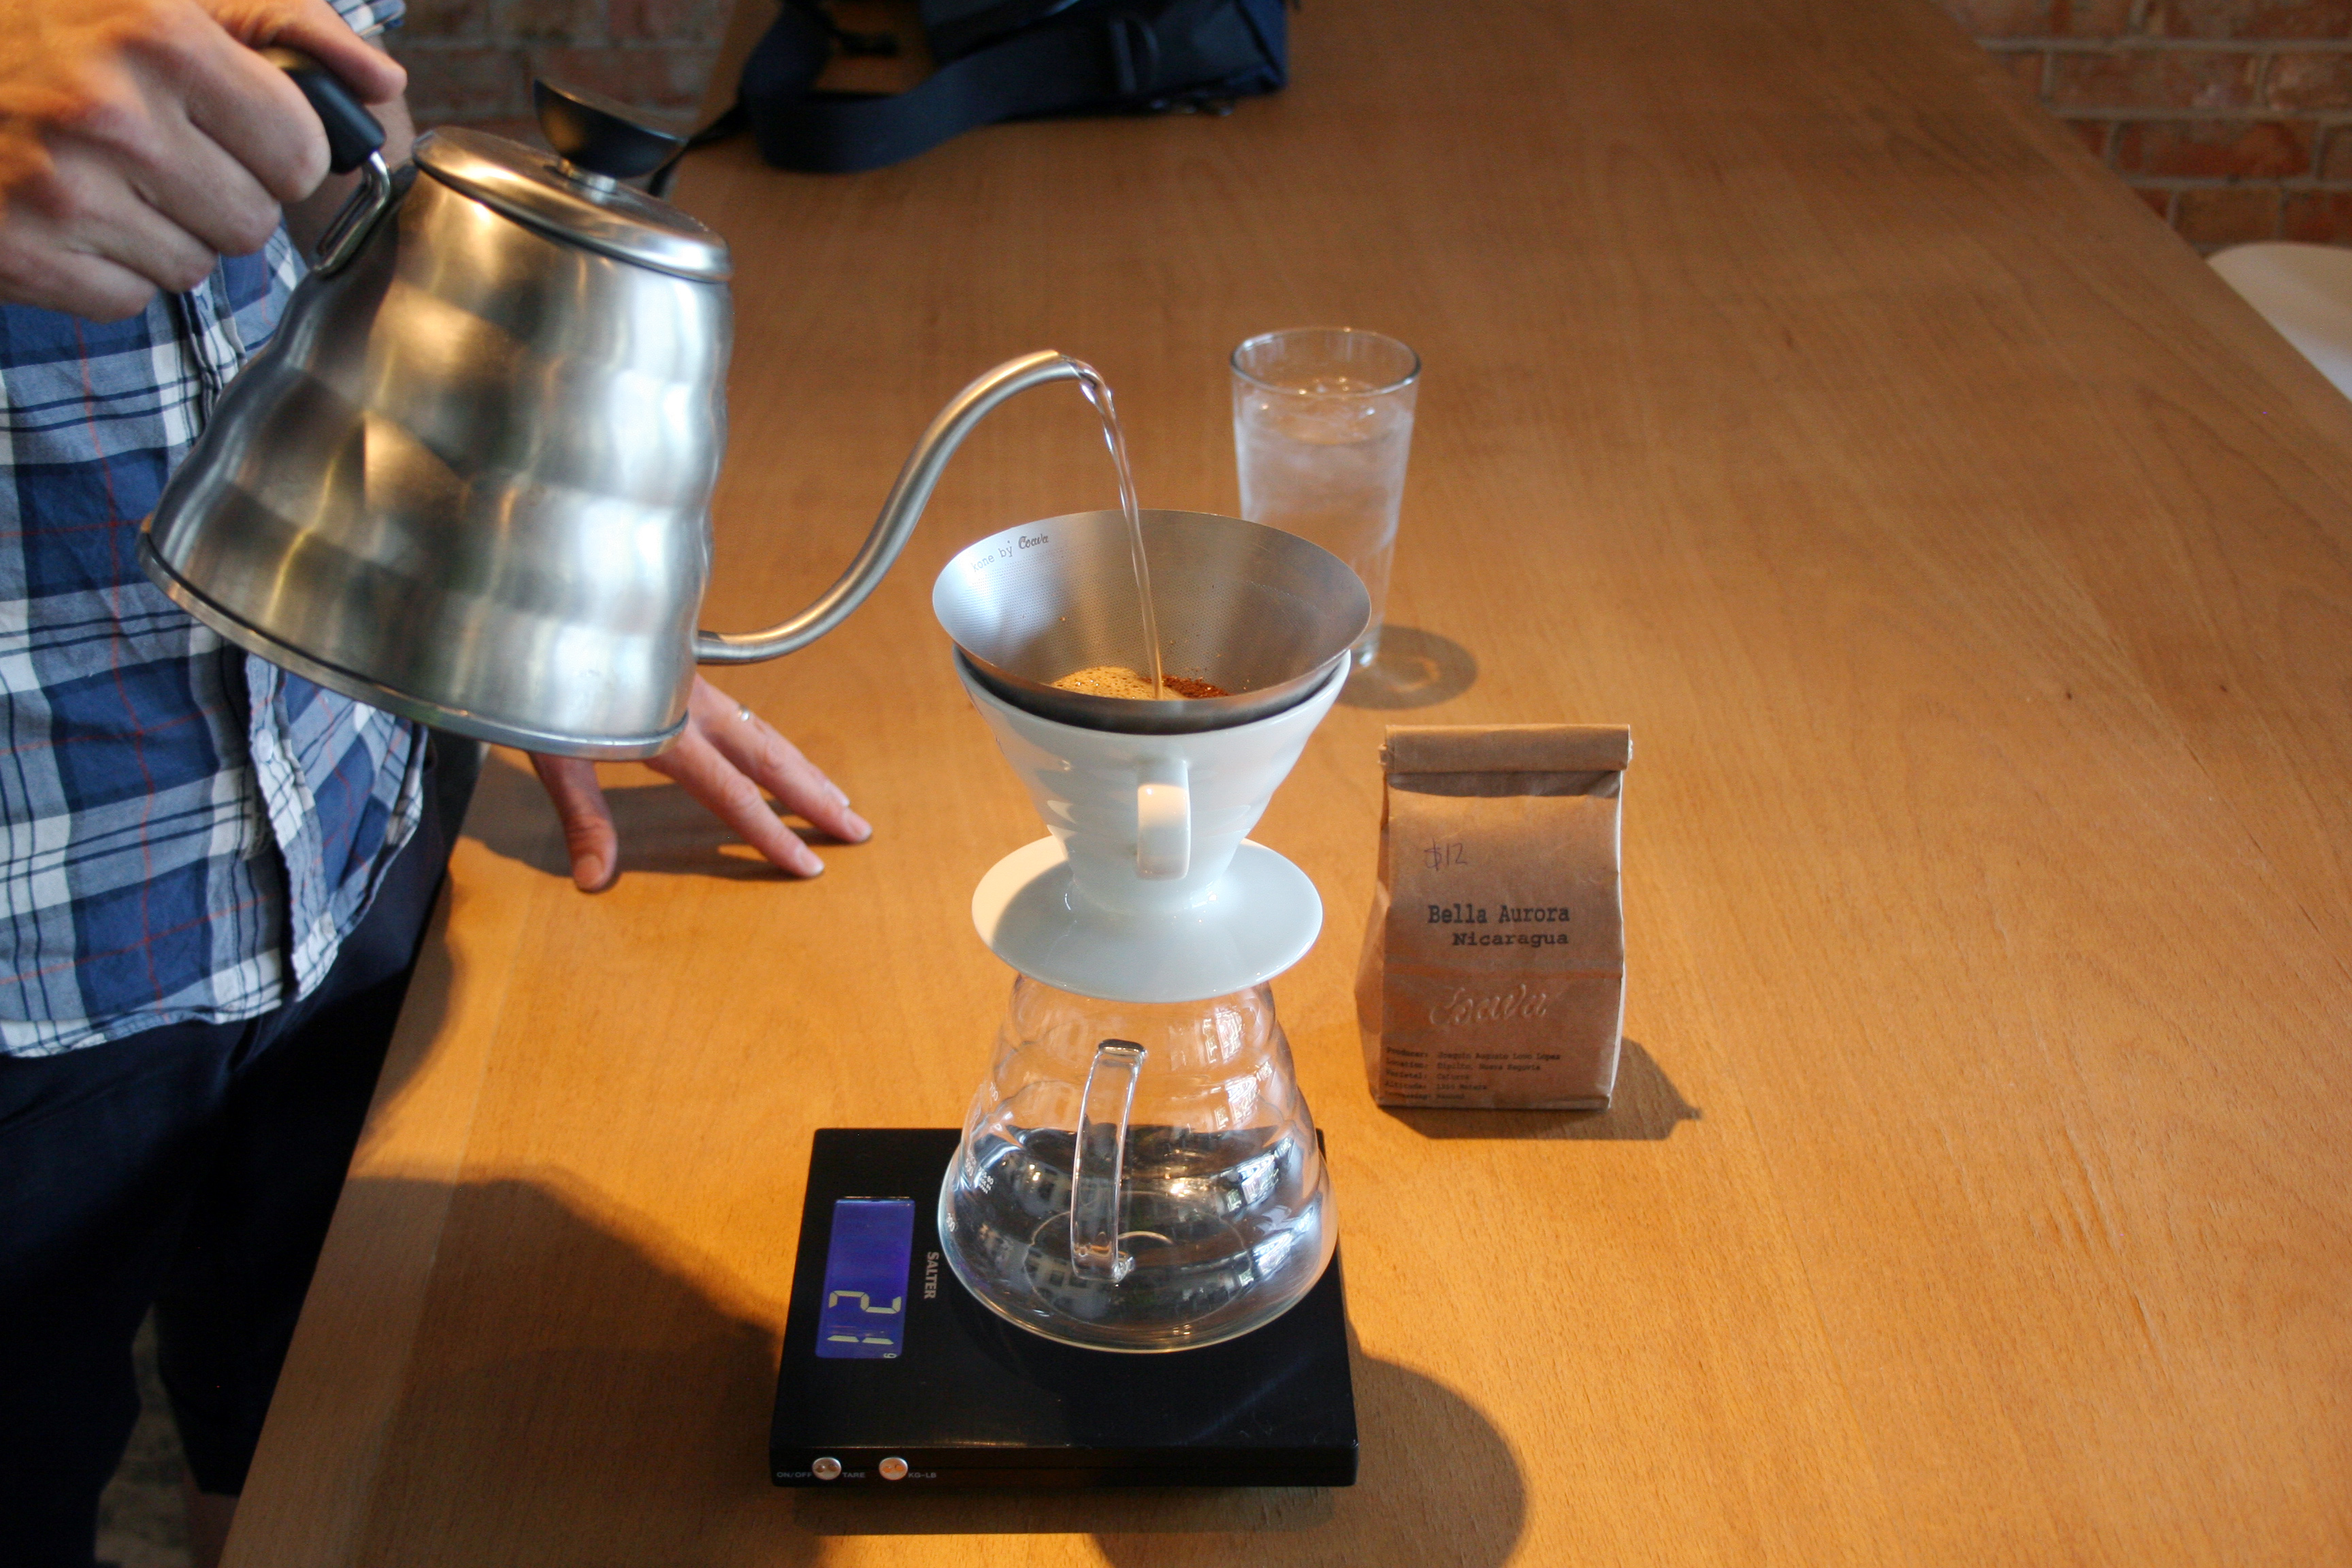 What is a pour over coffee? SLC Foodie